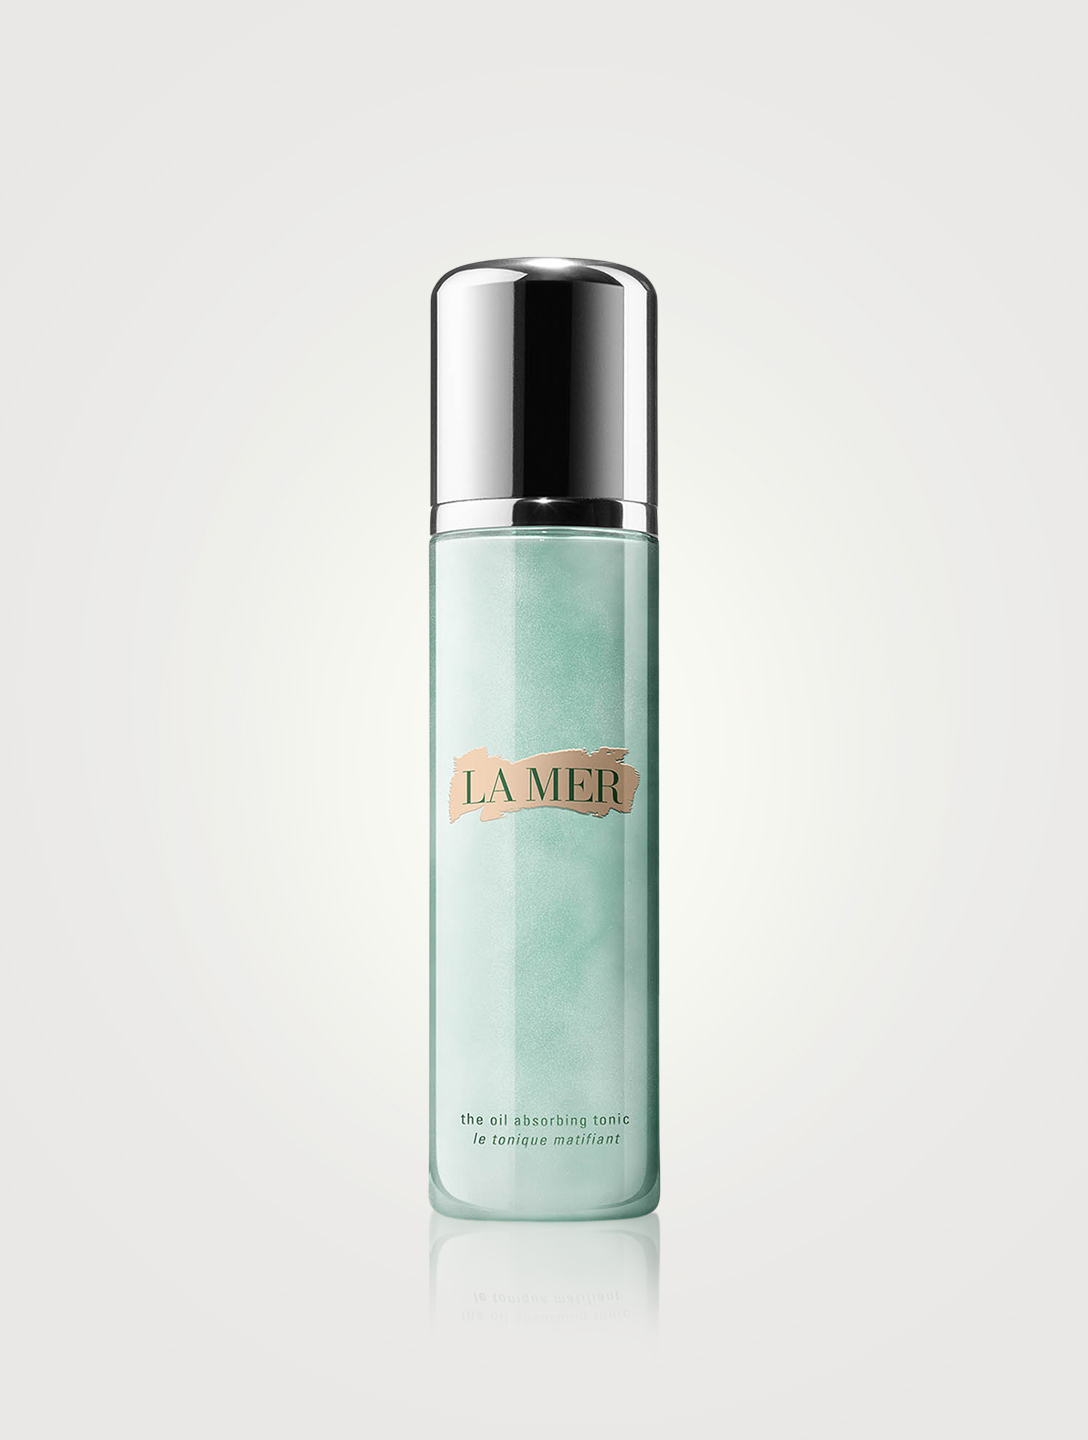 LA MER The Oil Absorbing Tonic Beauty